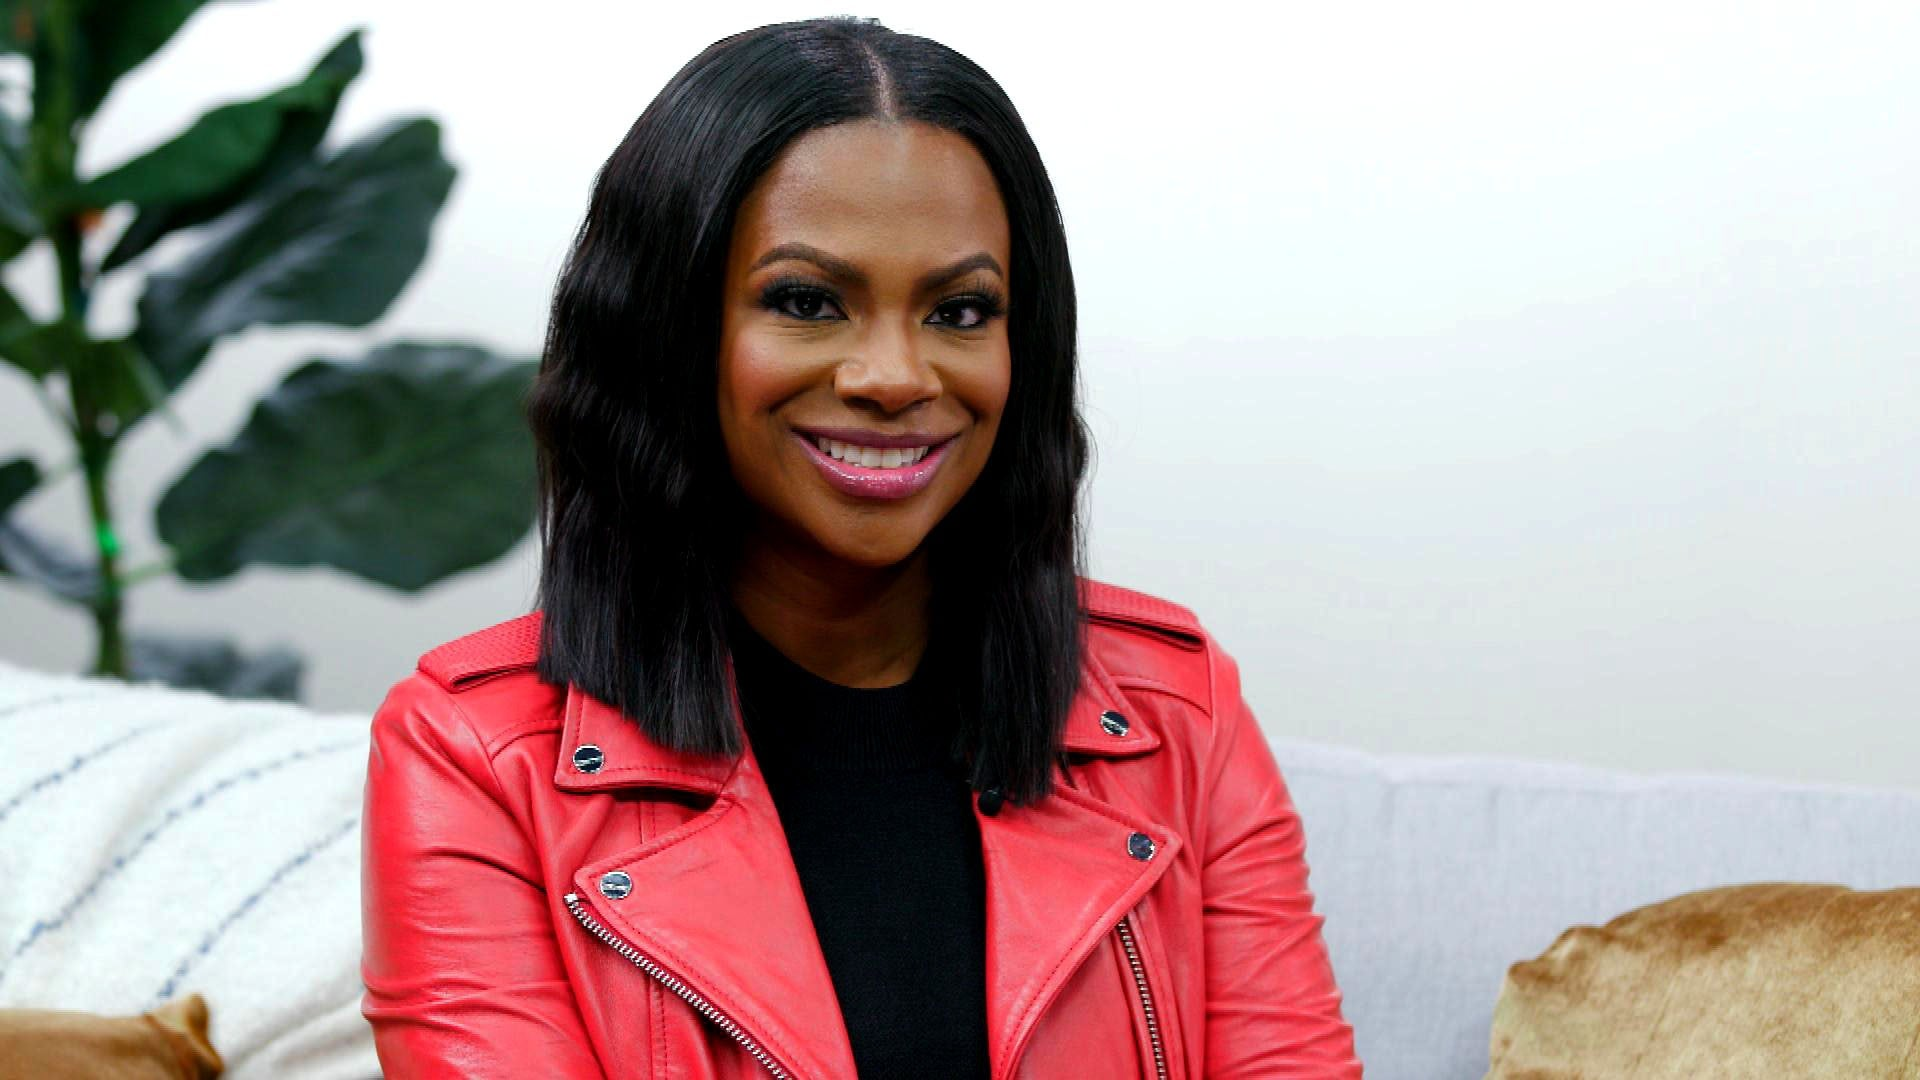 kandi-burruss-is-here-with-an-update-about-olg-see-her-video